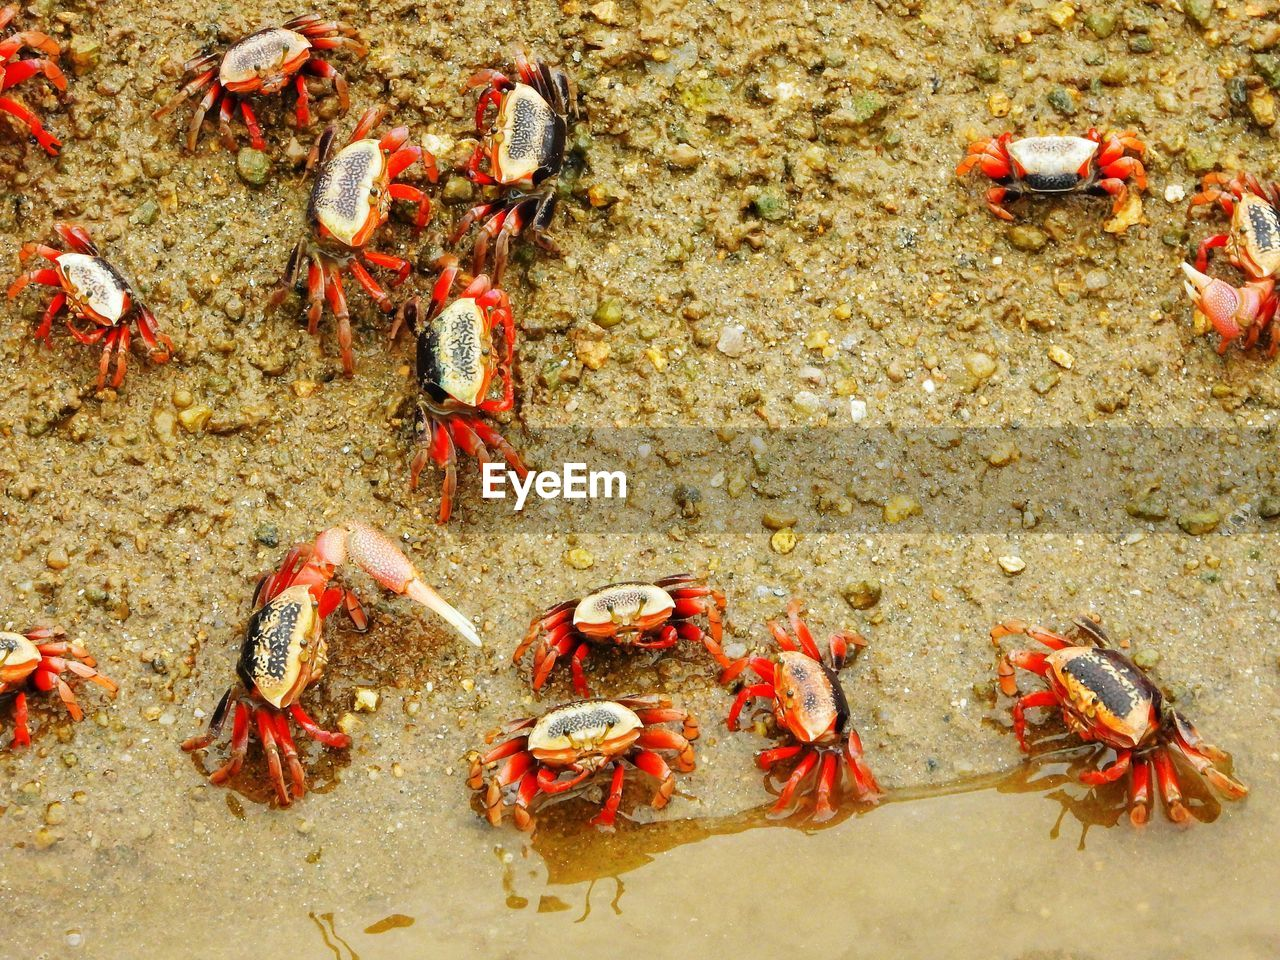 animal, animal themes, animal wildlife, crab, group of animals, animals in the wild, high angle view, crustacean, sea, land, large group of animals, nature, day, marine, claw, sea life, no people, insect, water, beach, outdoors